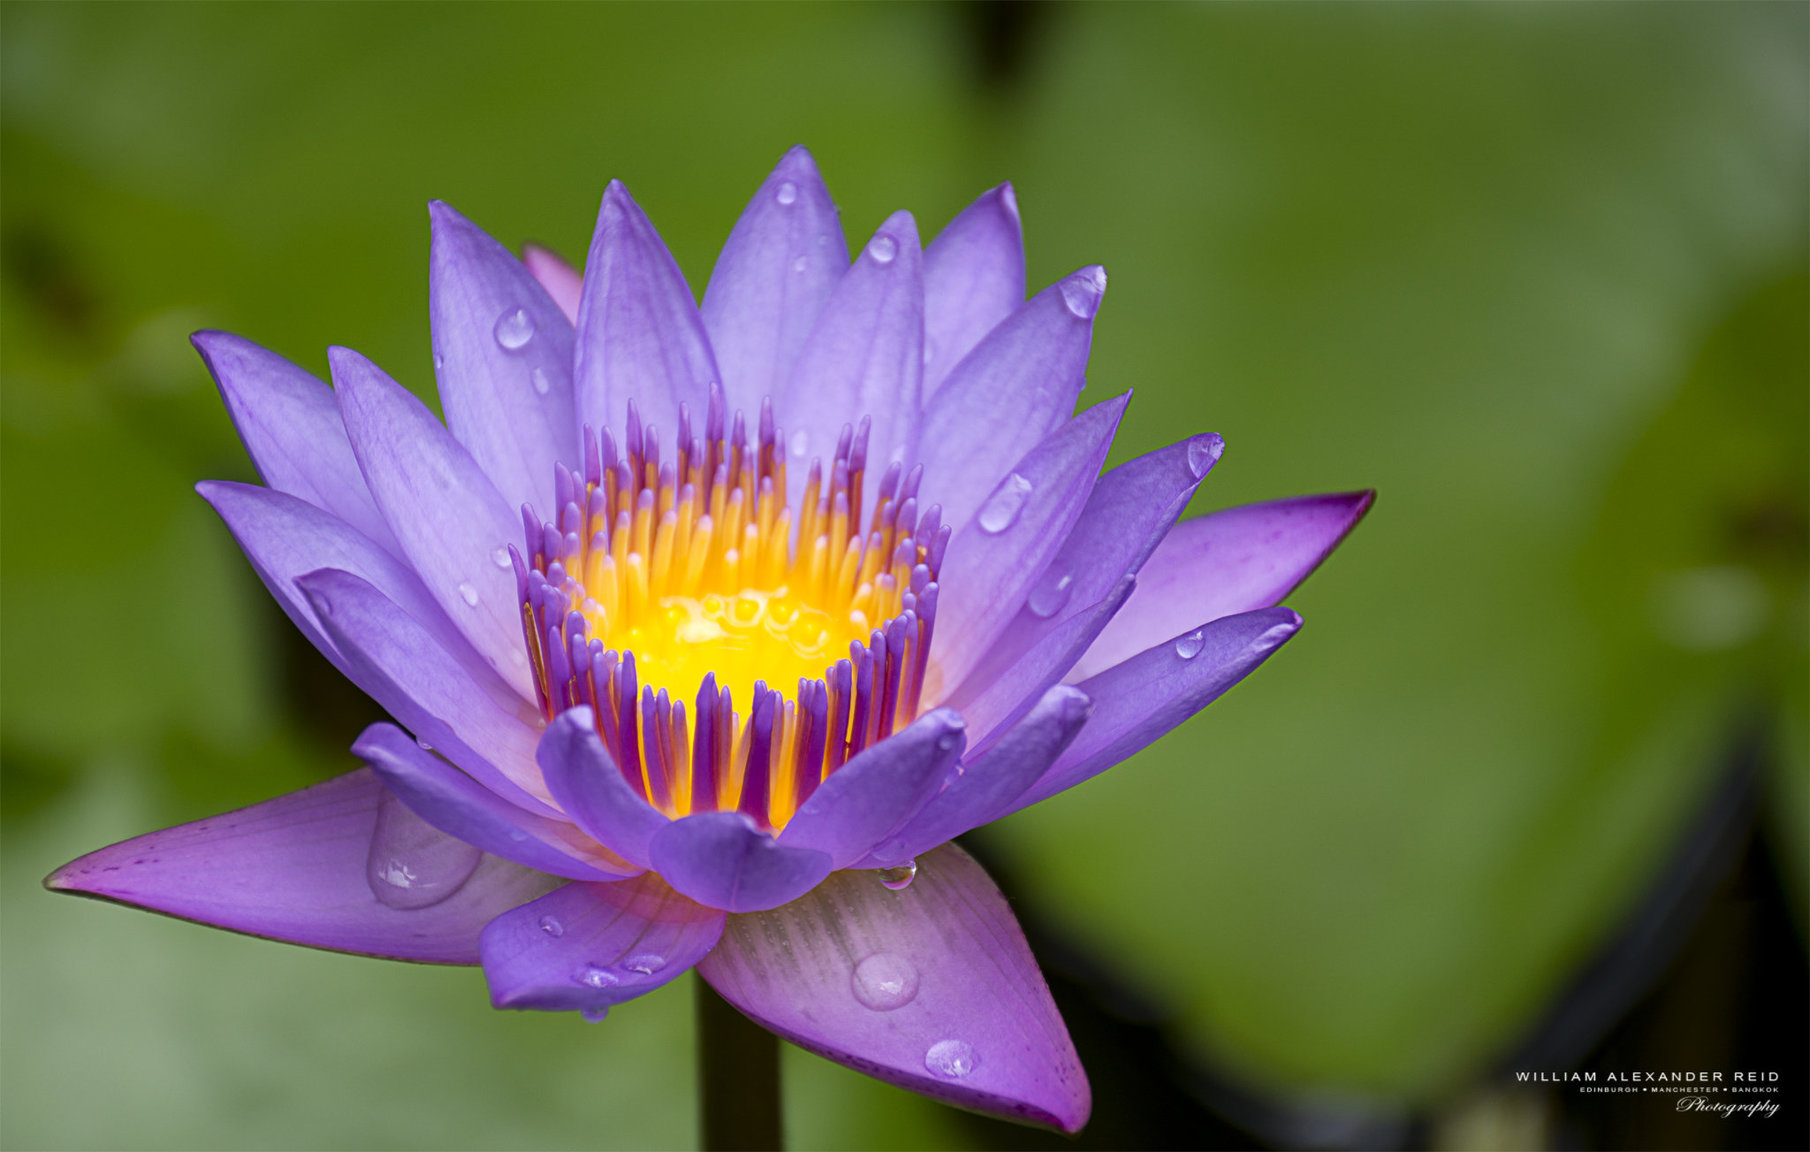 364850056_DSC_7494PurpleWaterLilyintheRain.thumb.jpg.175032dd26f818cd772d87c6da4ba248.jpg